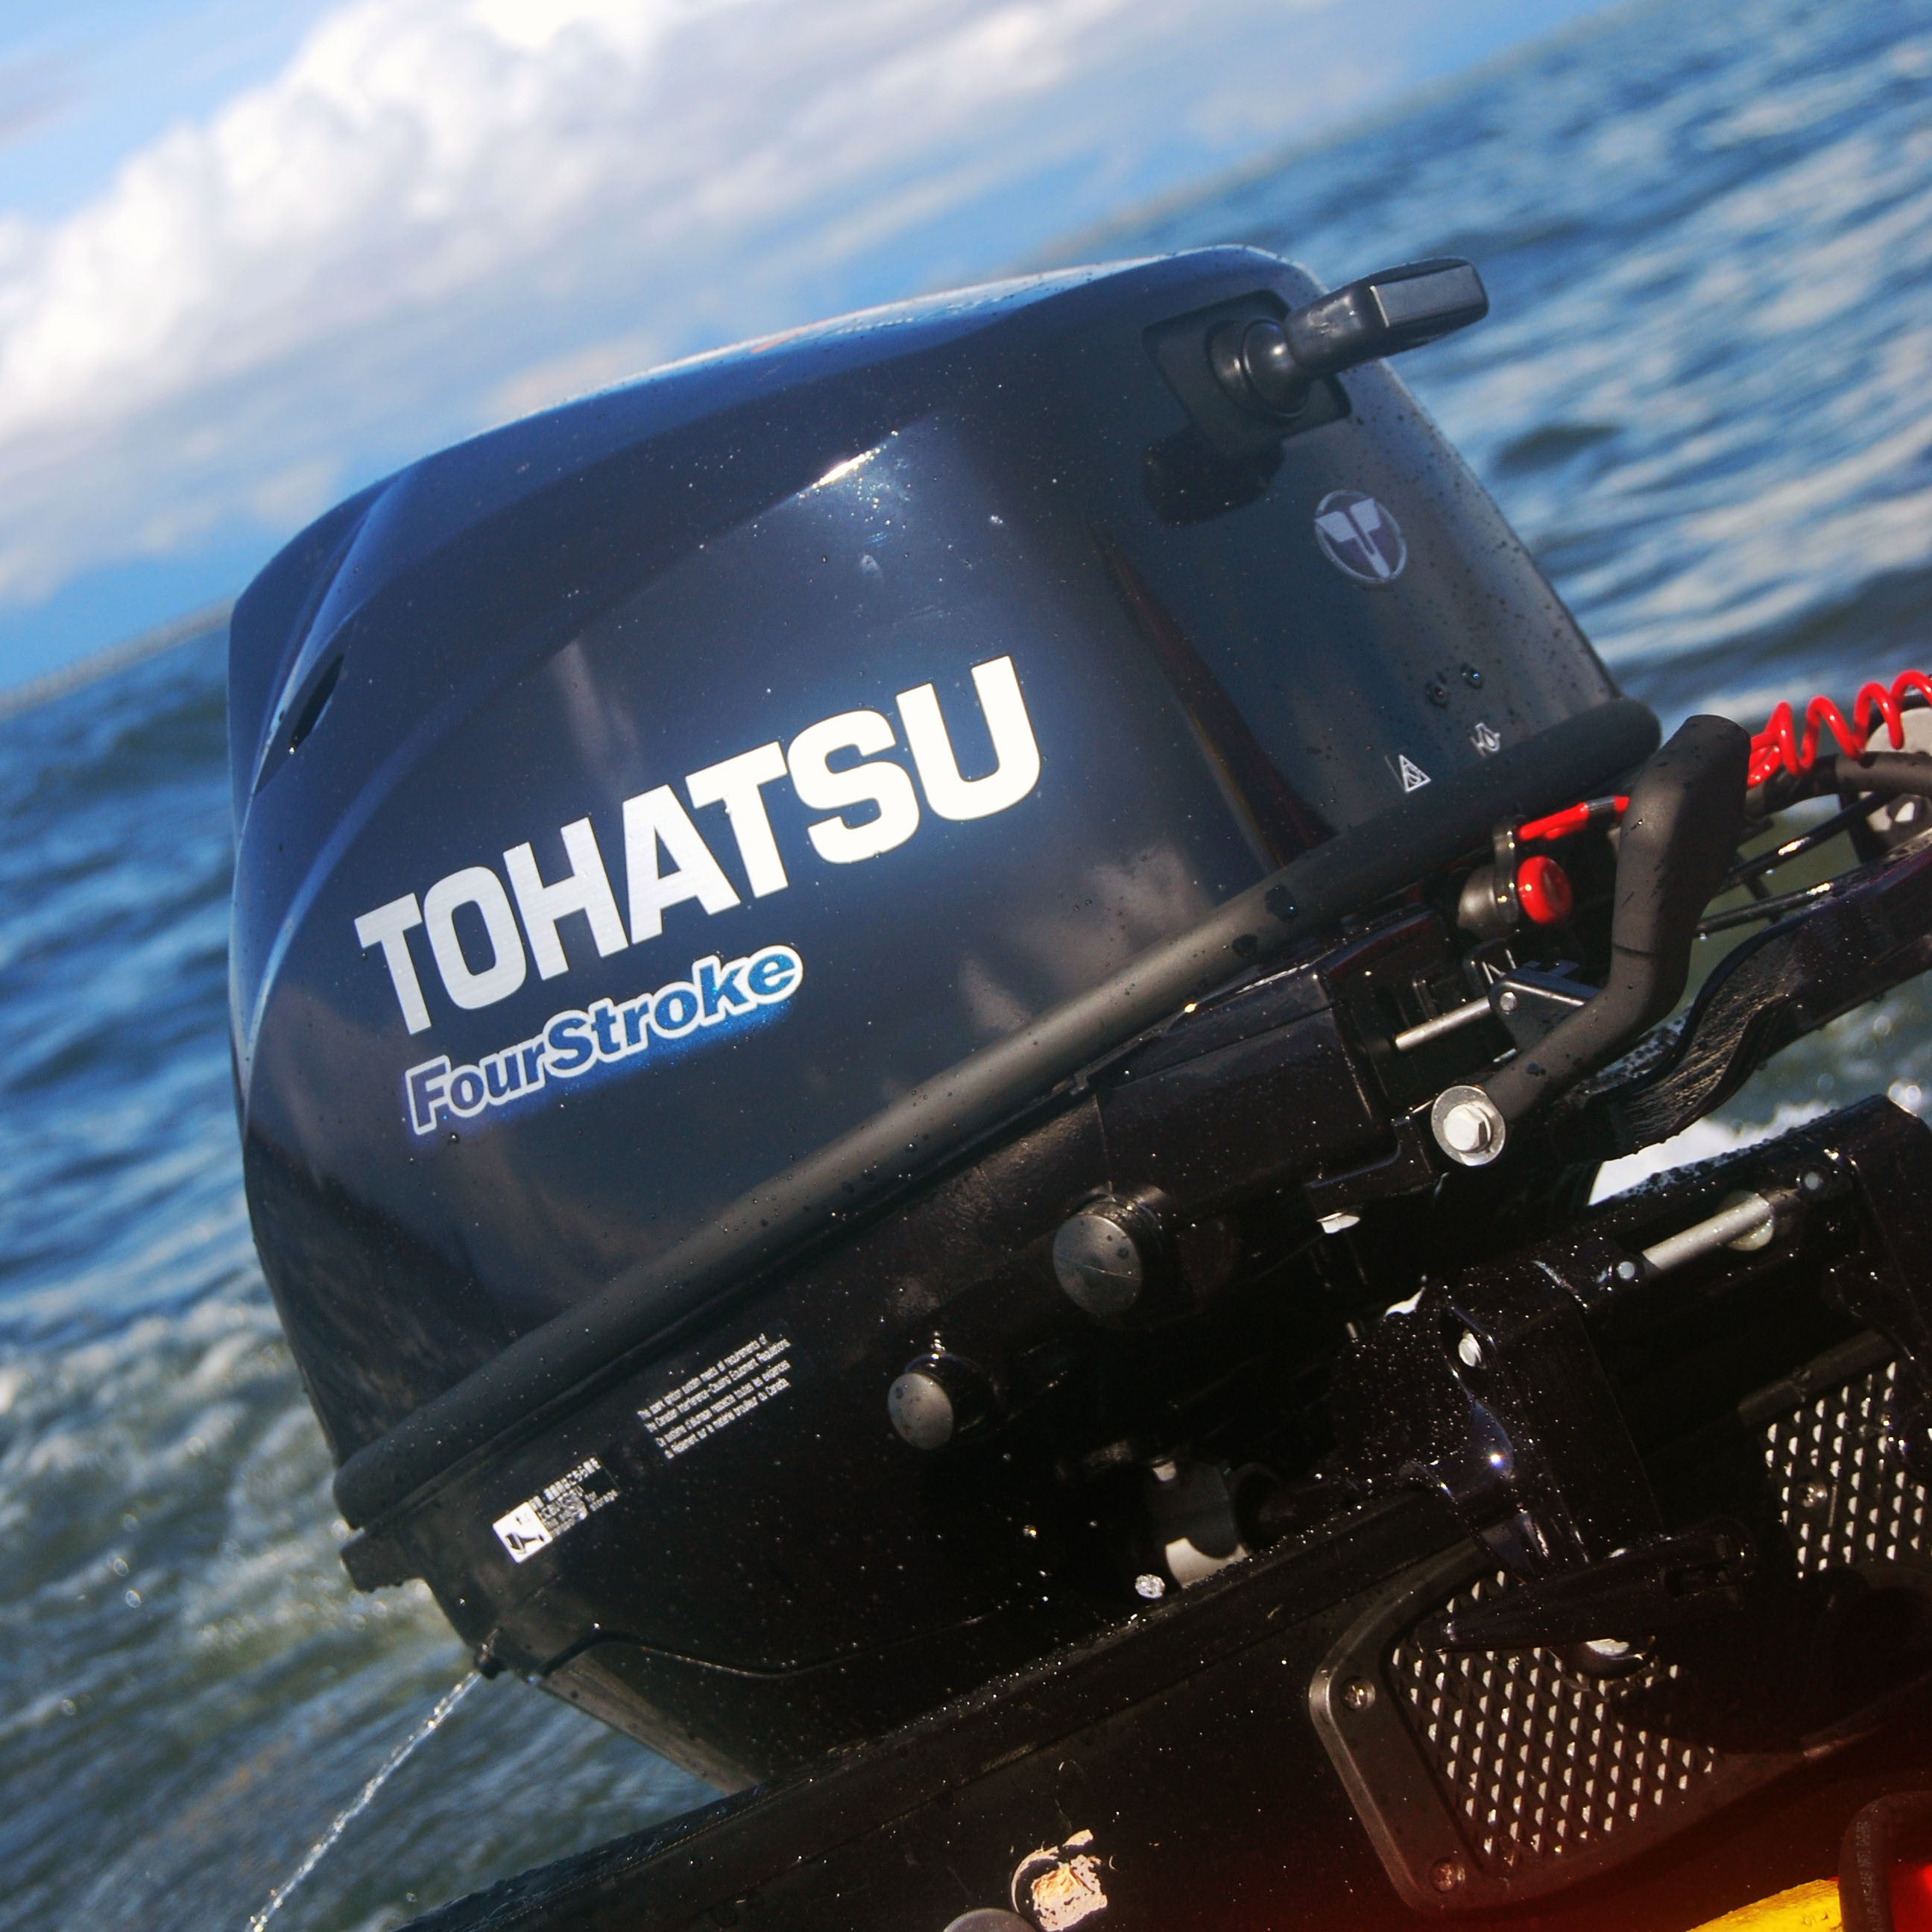 Tohatsu 4-Stroke 9.8HP Outboard Motor, Tiller Handle, New in the box -  Seamax Marine